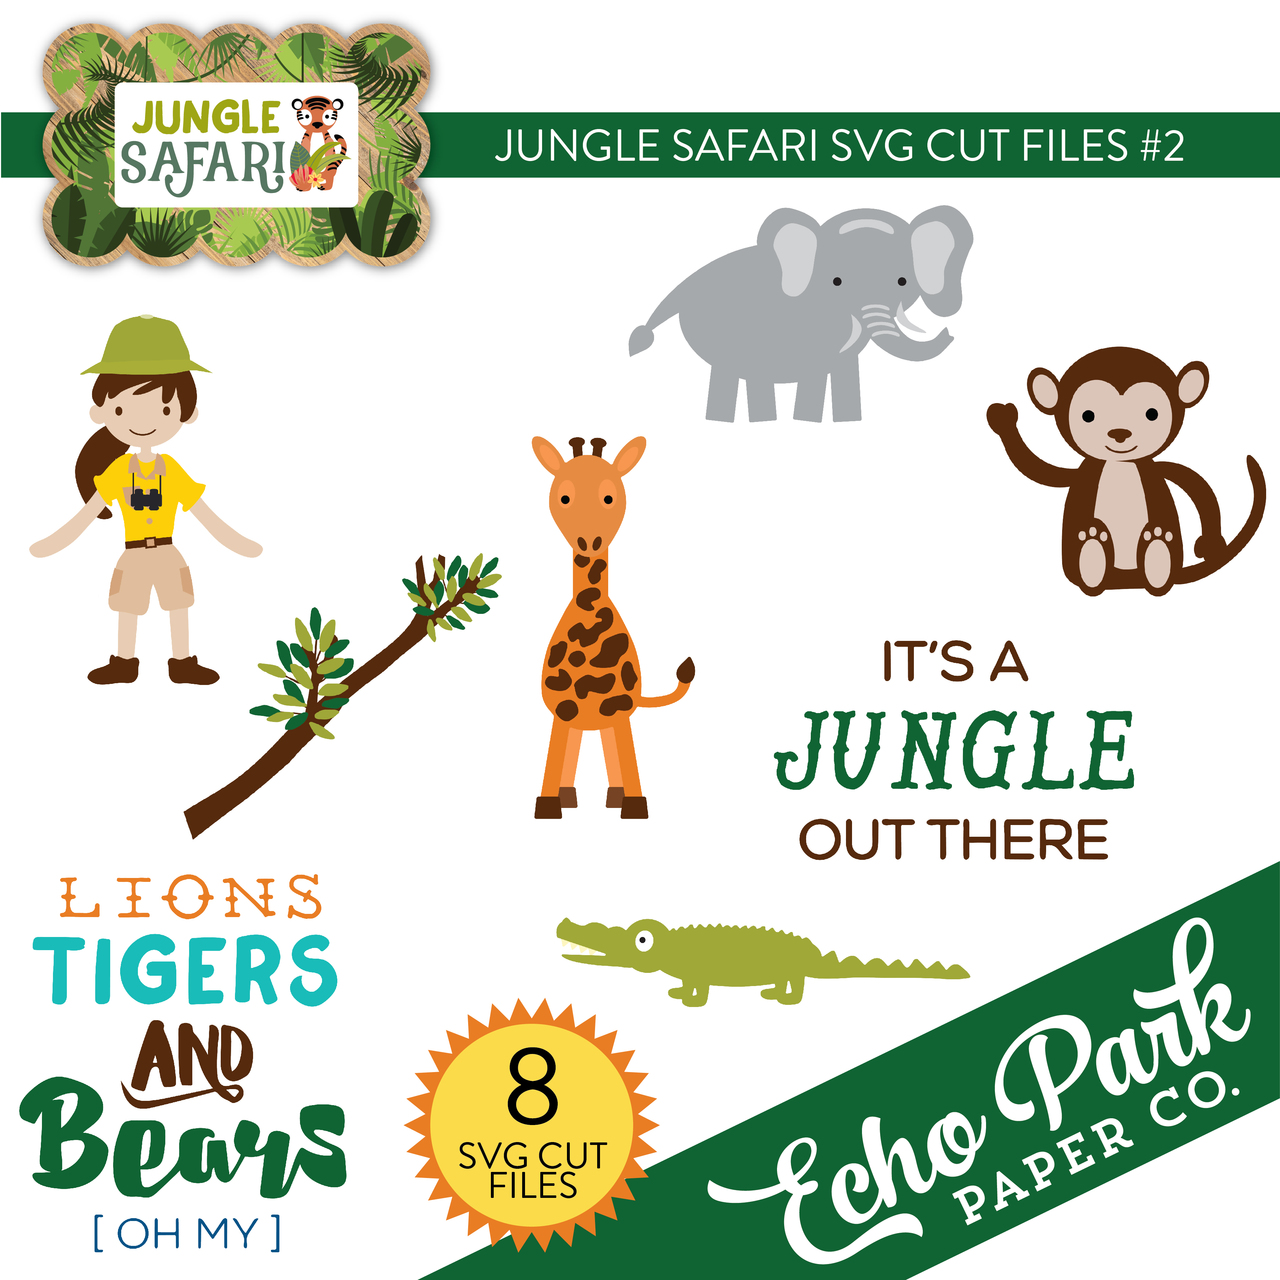 Jungle Safari SVG Cut Files #2